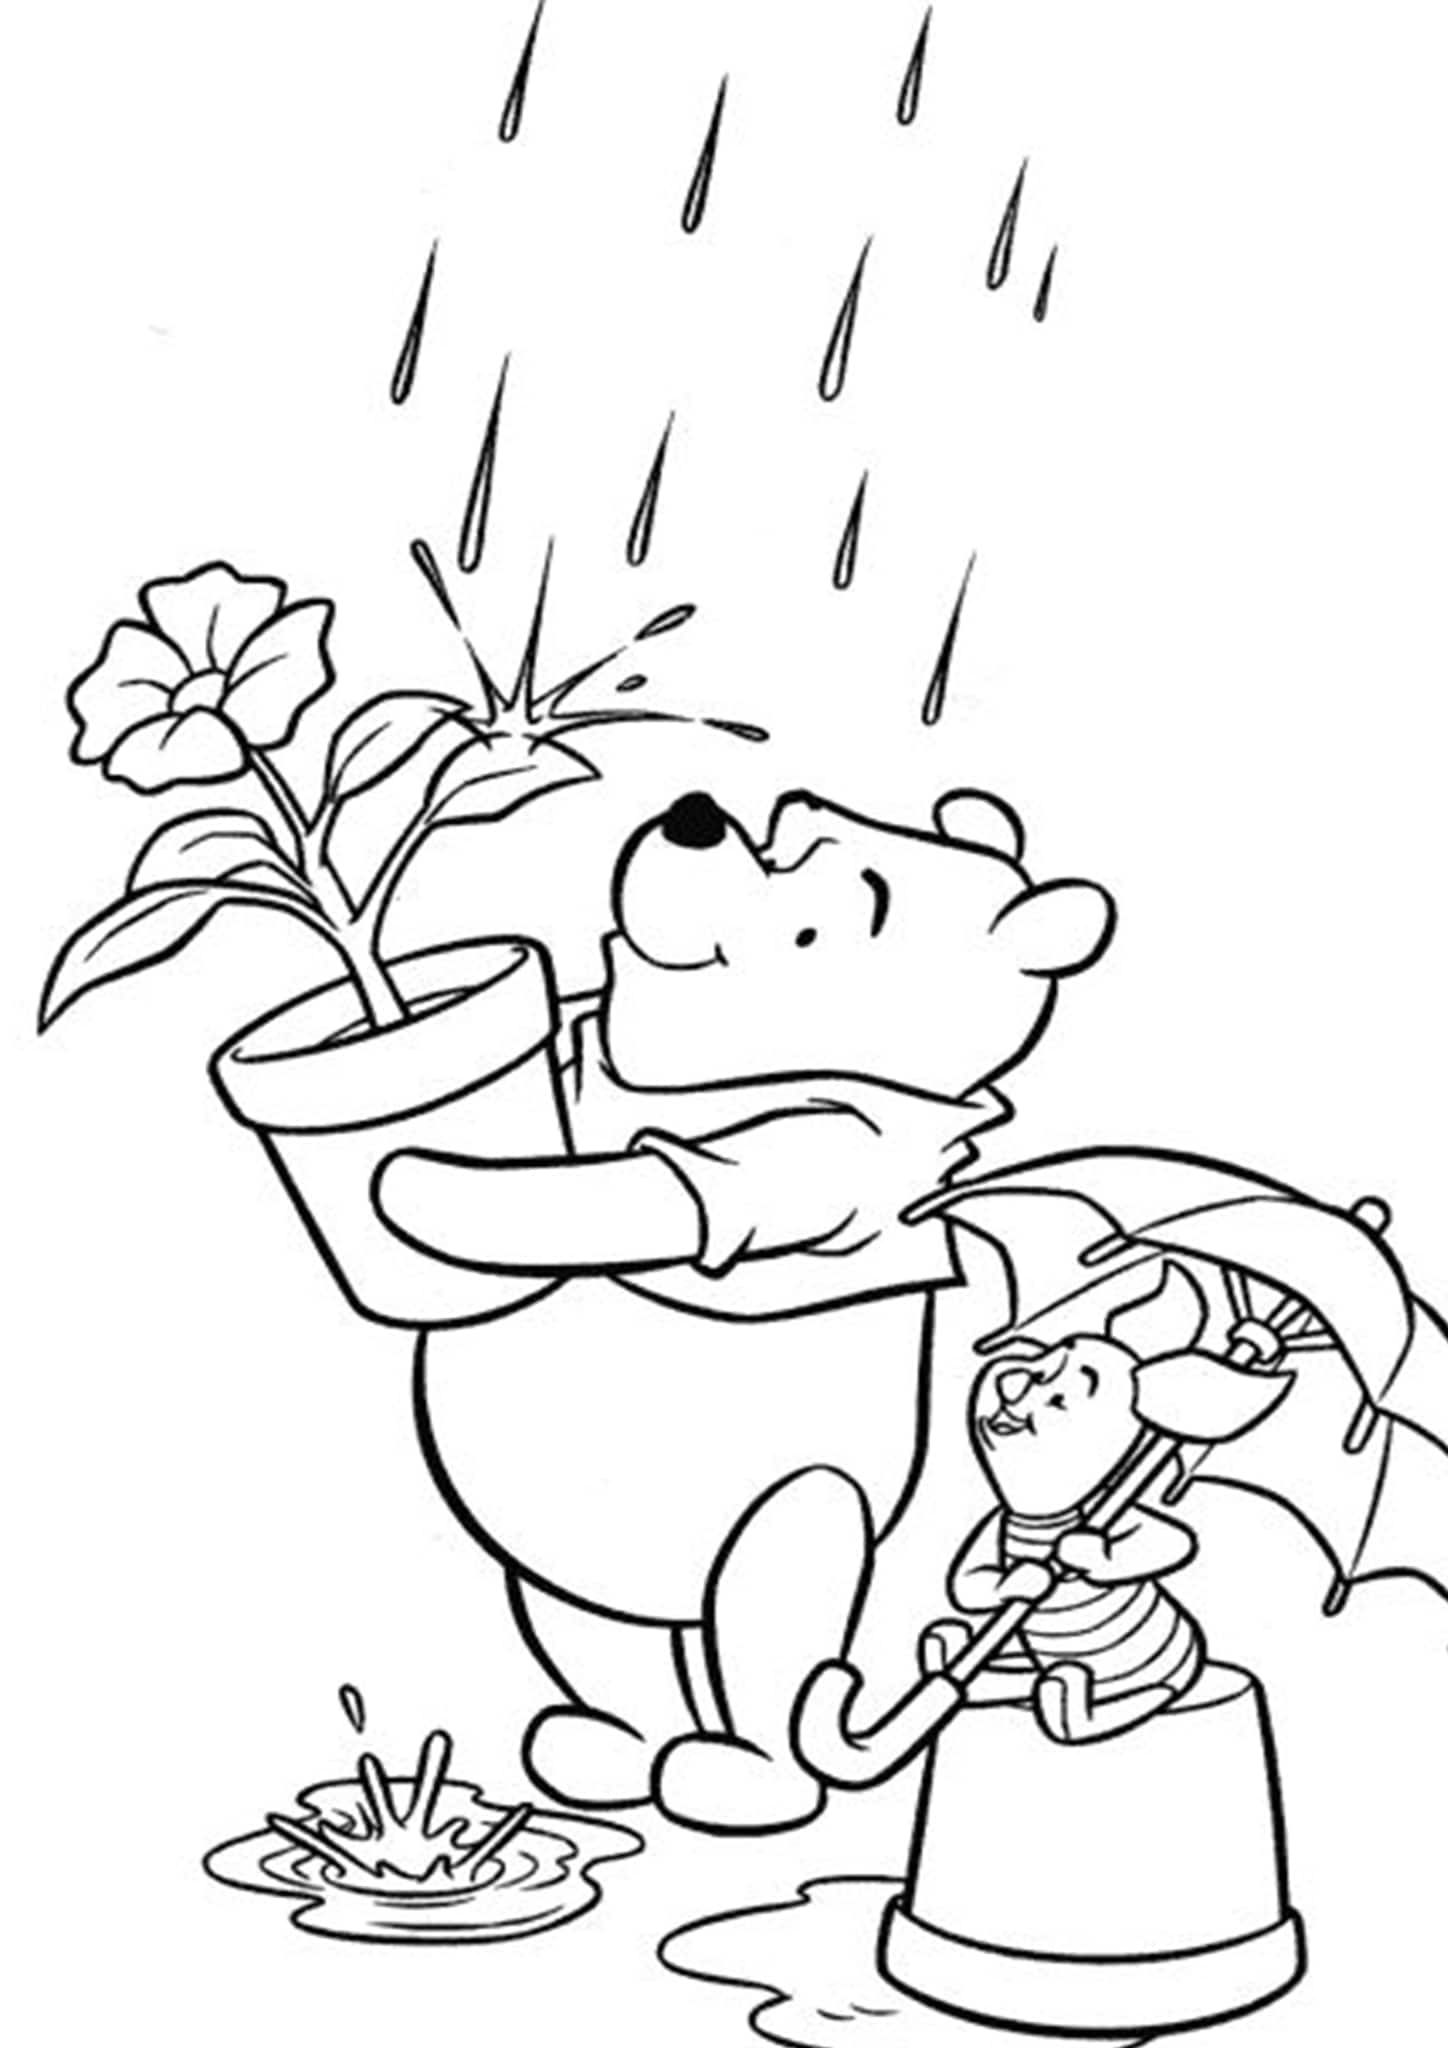 Free Easy To Print Winnie The Pooh Coloring Pages Cartoon Coloring Pages Disney Coloring Sheets Disney Coloring Pages